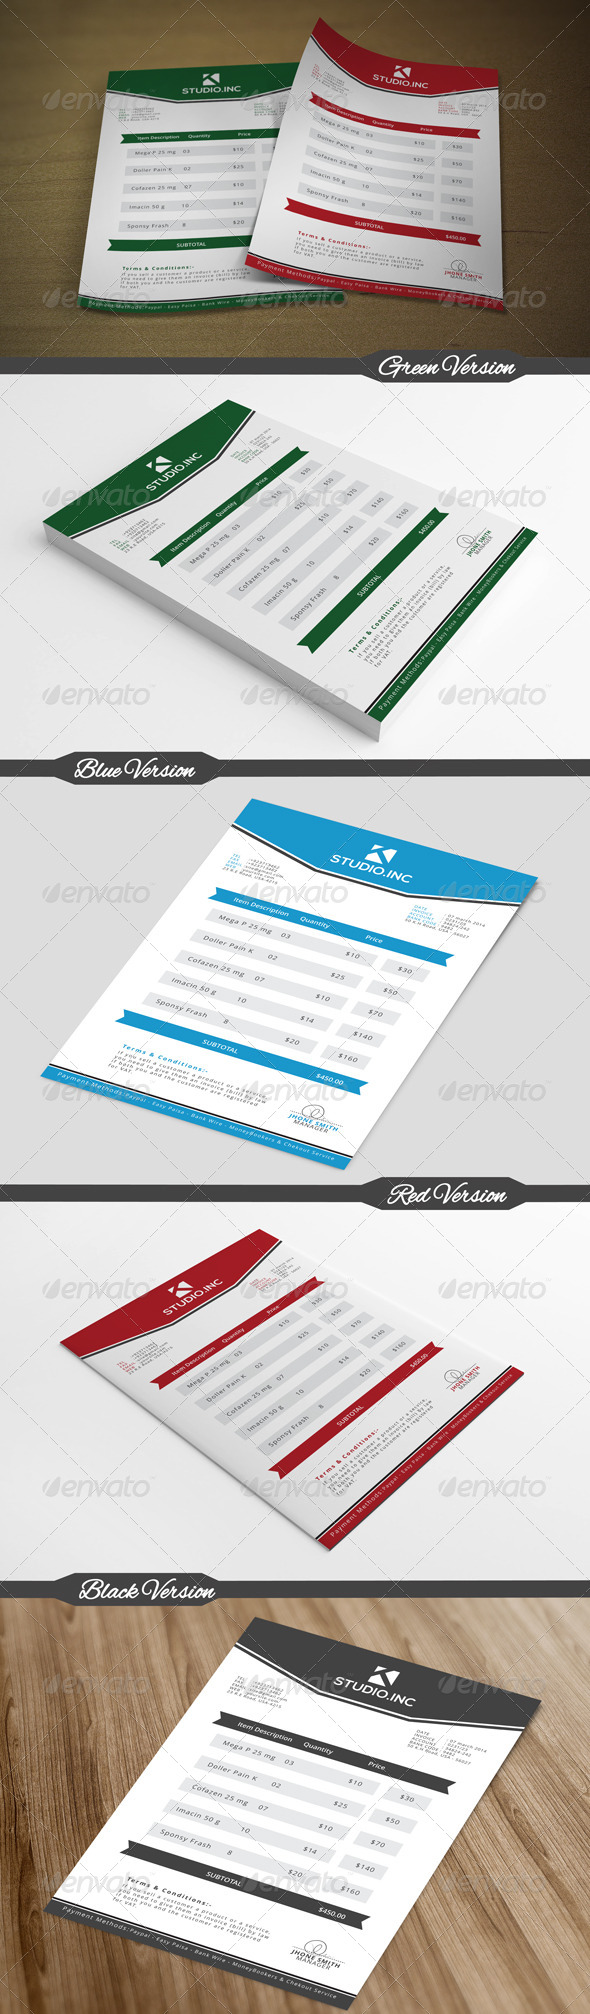 GraphicRiver Simple & Clean Invoice 7170535